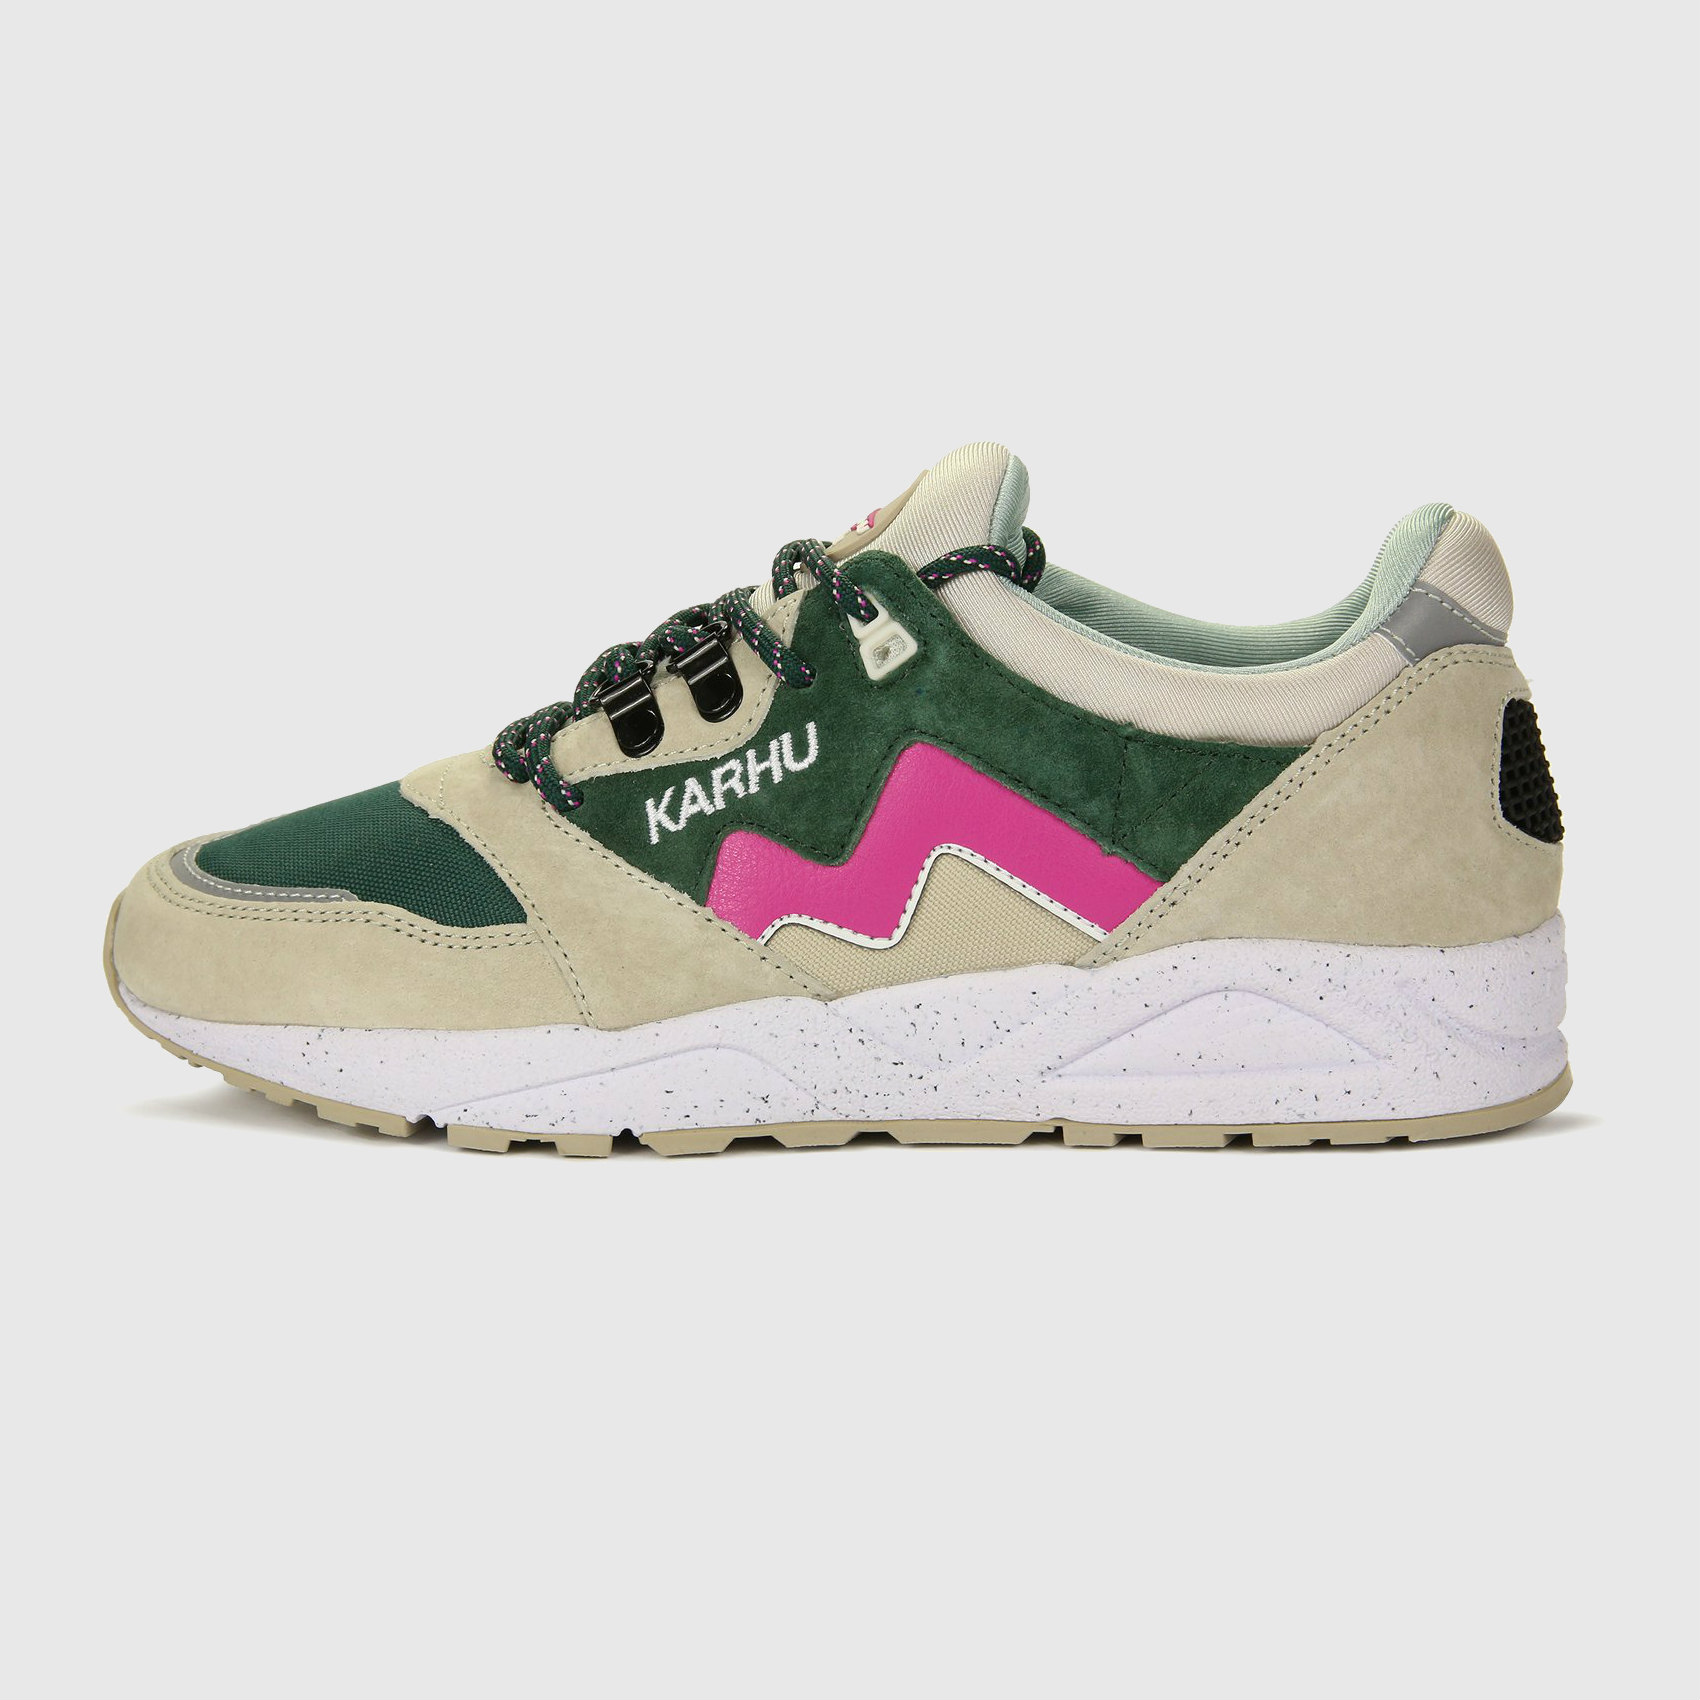 Karhu Aria Winter - June Bug / Peyote